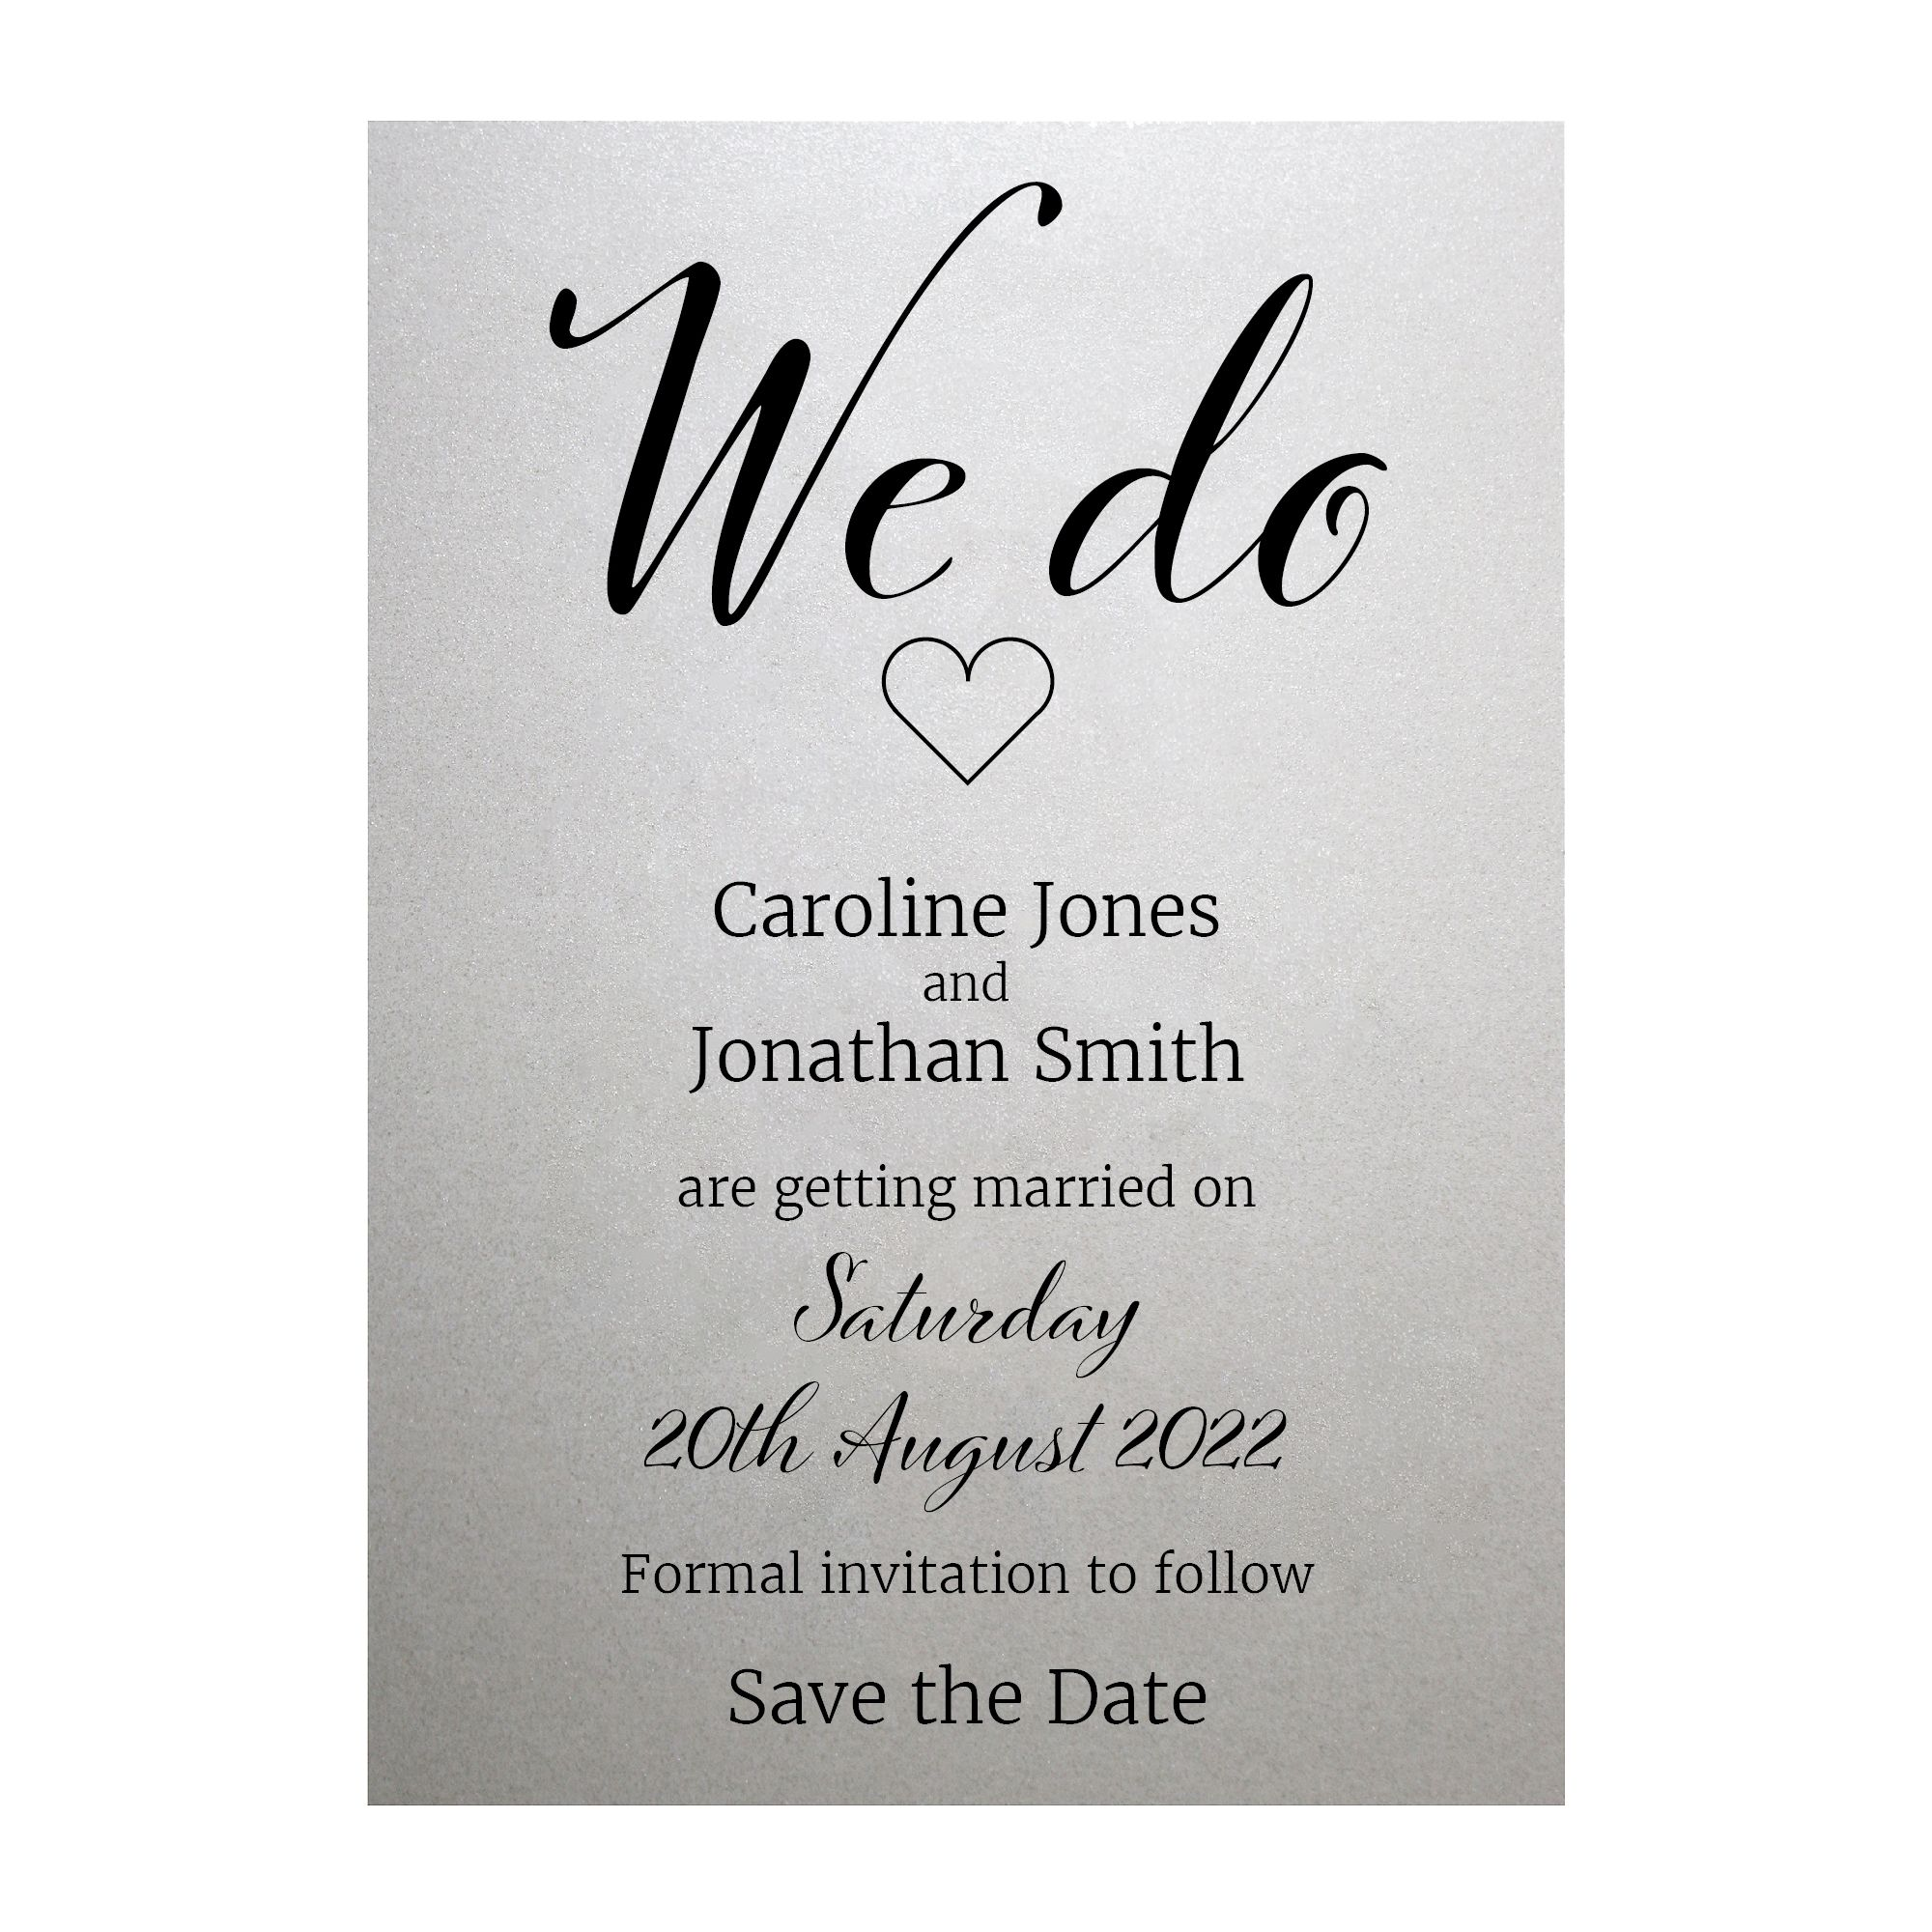 Shimmer Arctic White We Do Save the Date Cards